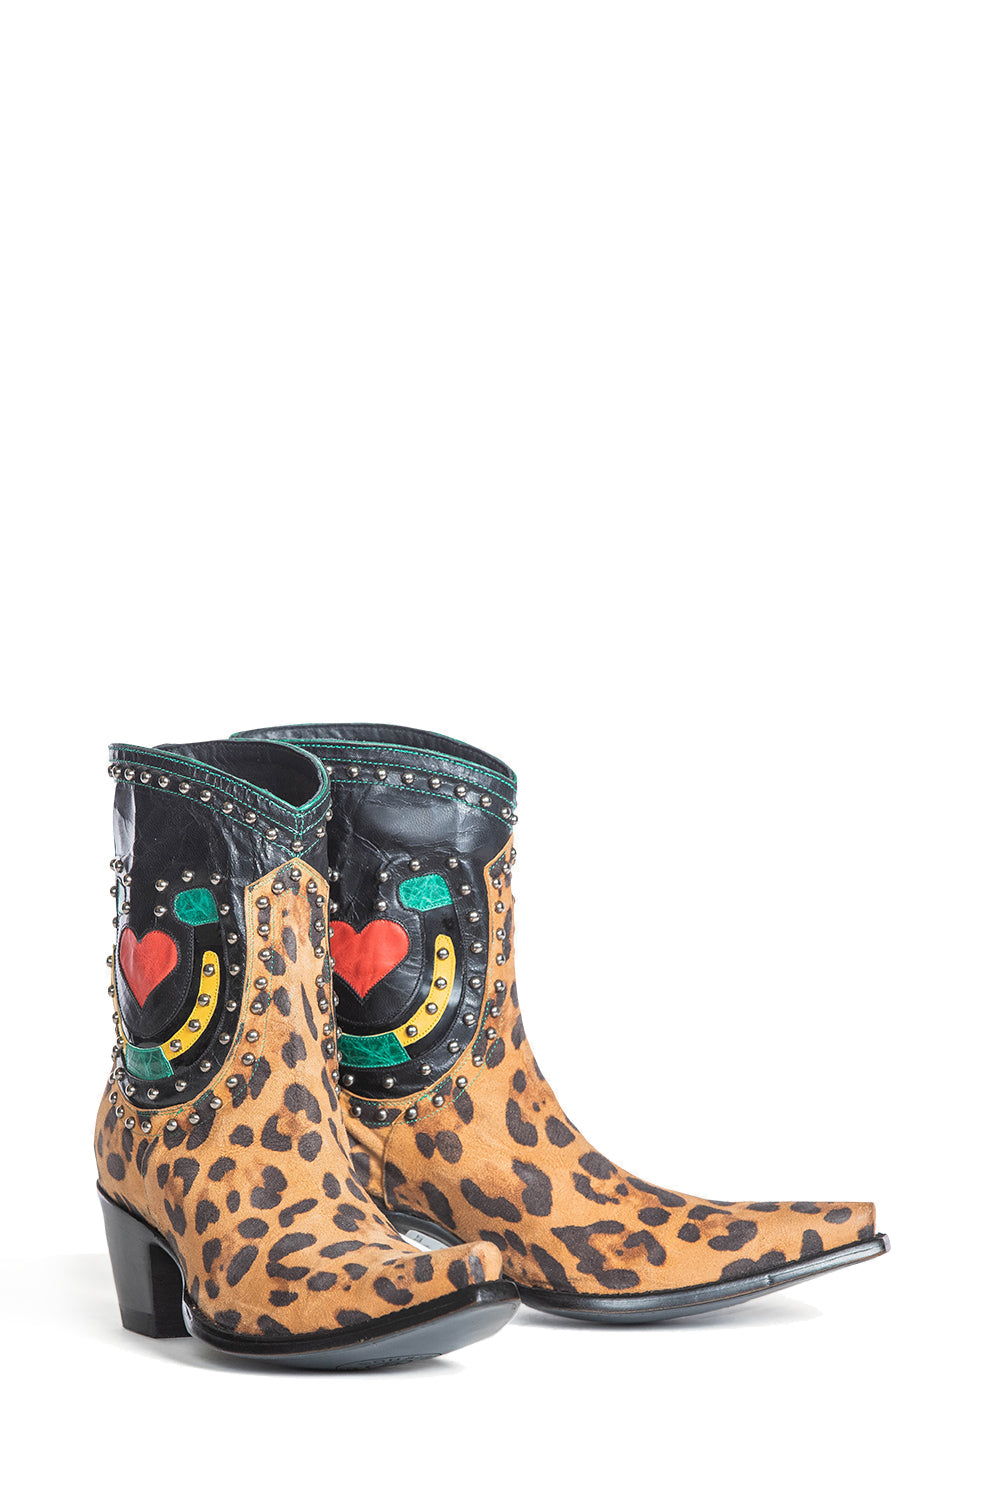 Jungle Jim Boot